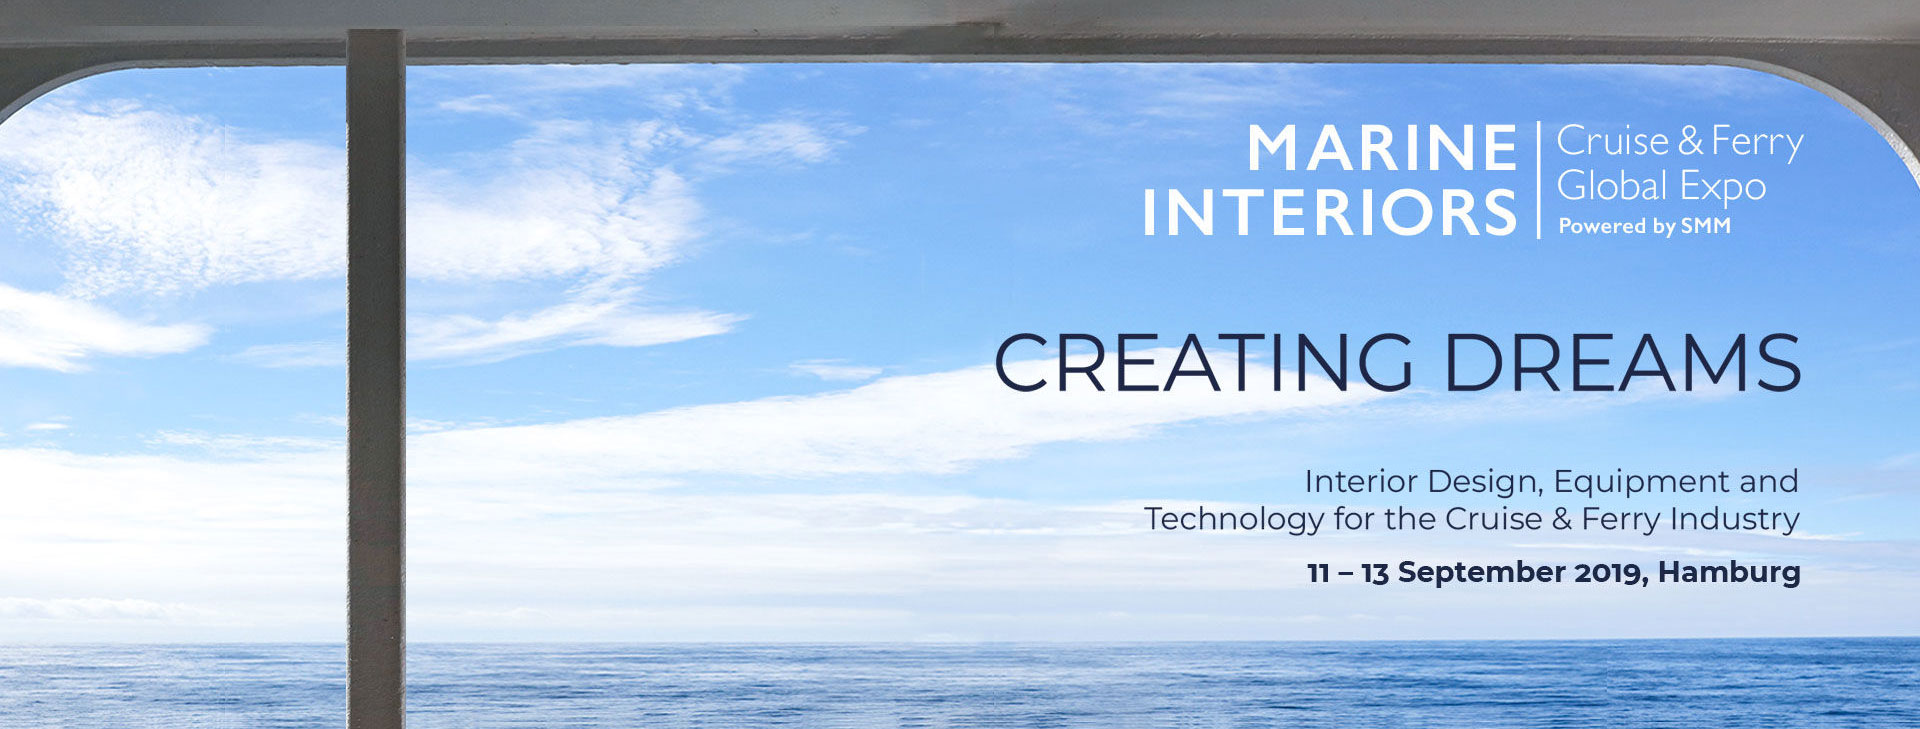 MARINE INTERIORS - Cruise & Ferry Global Expo